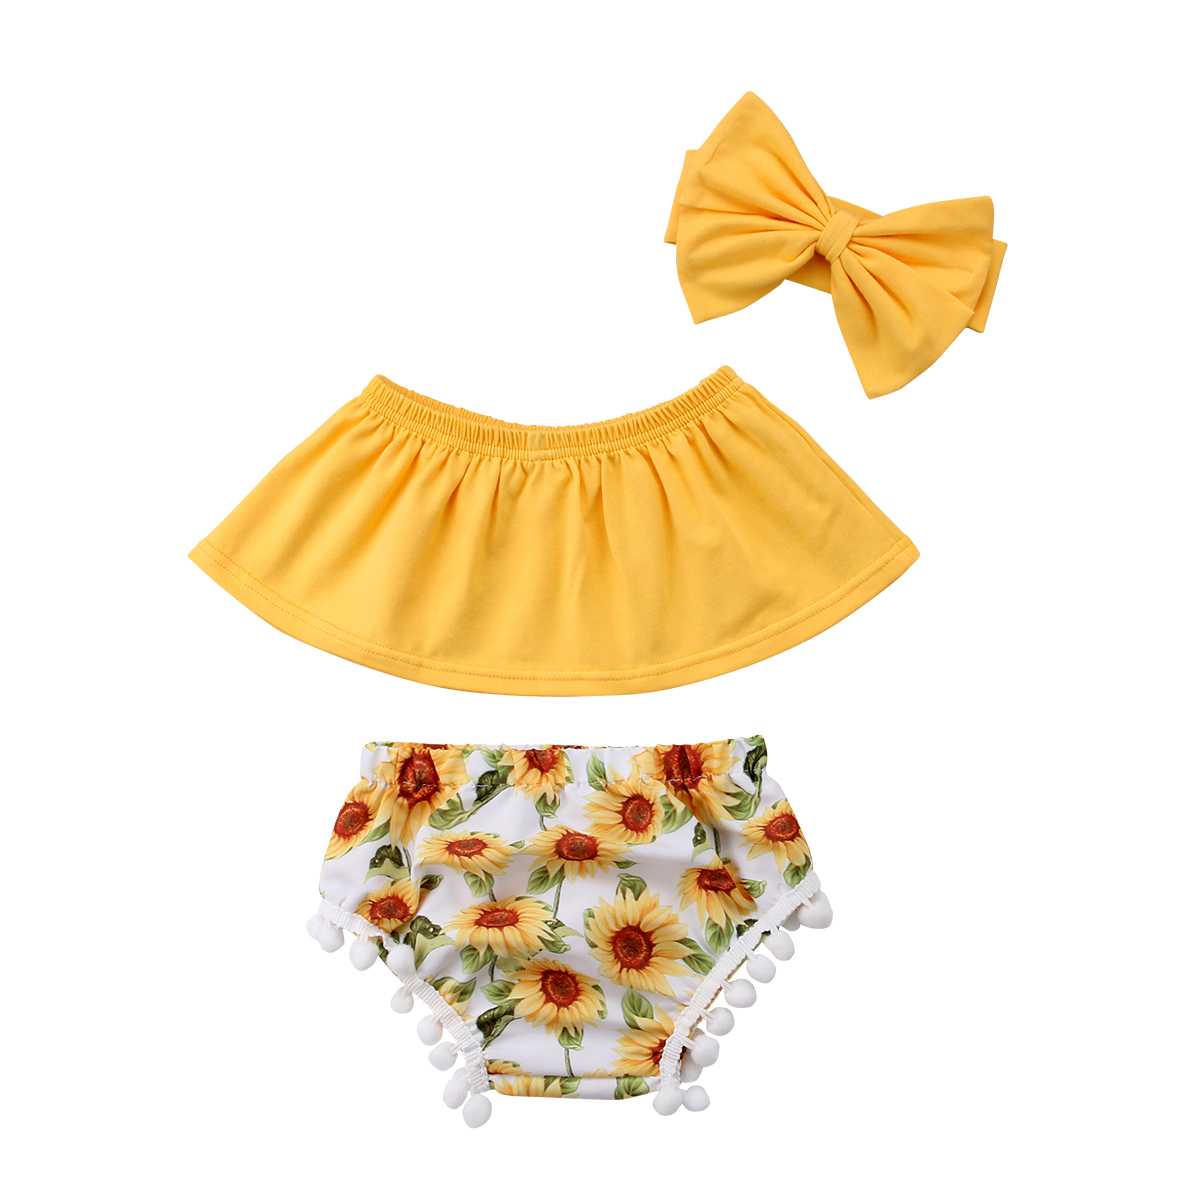 WANGSAURA Summer Toddler Baby Girls 3pcs Cotton